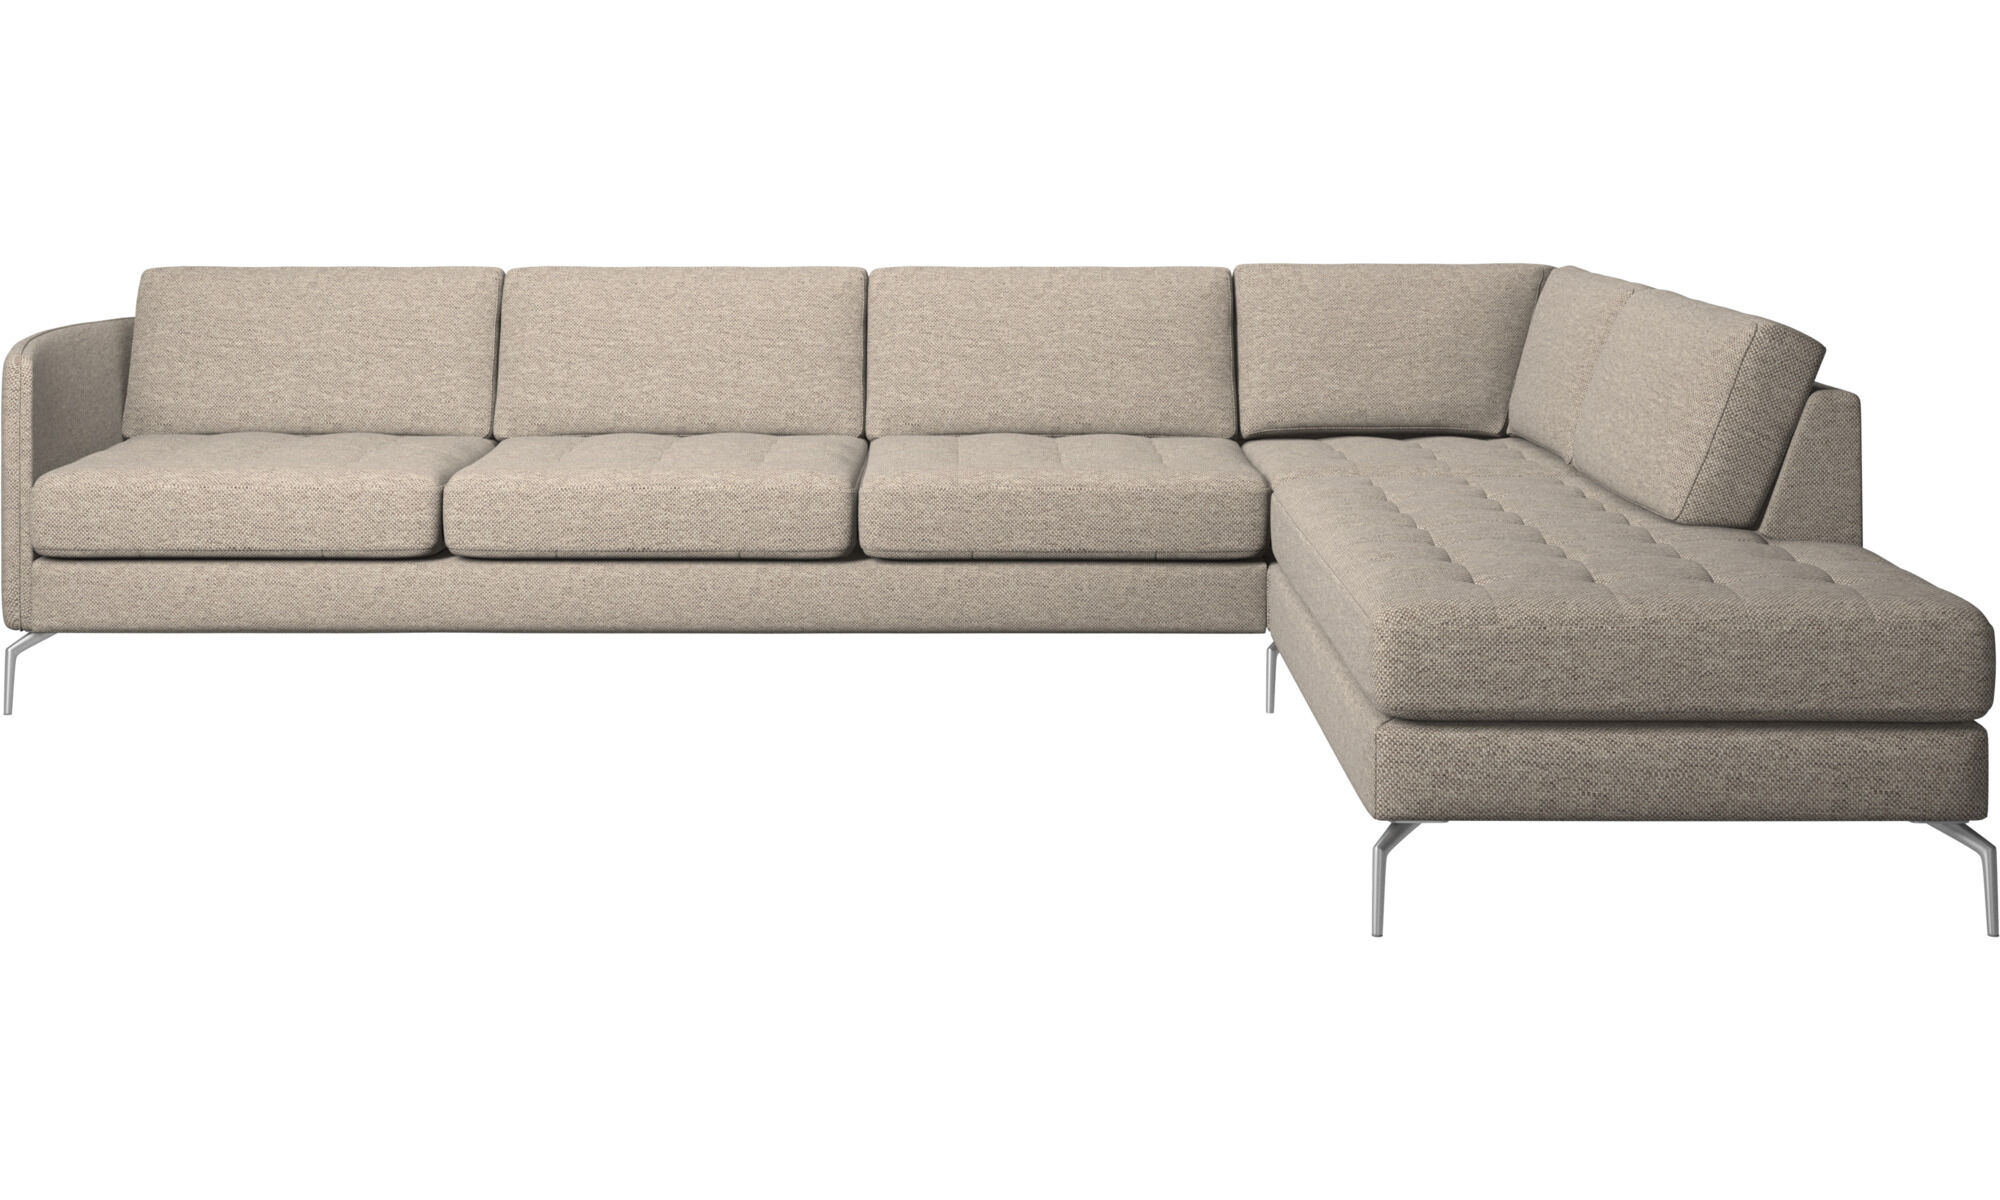 Sofas With Open End   Osaka Corner Sofa With Lounging Unit, Tufted Seat    Beige ...